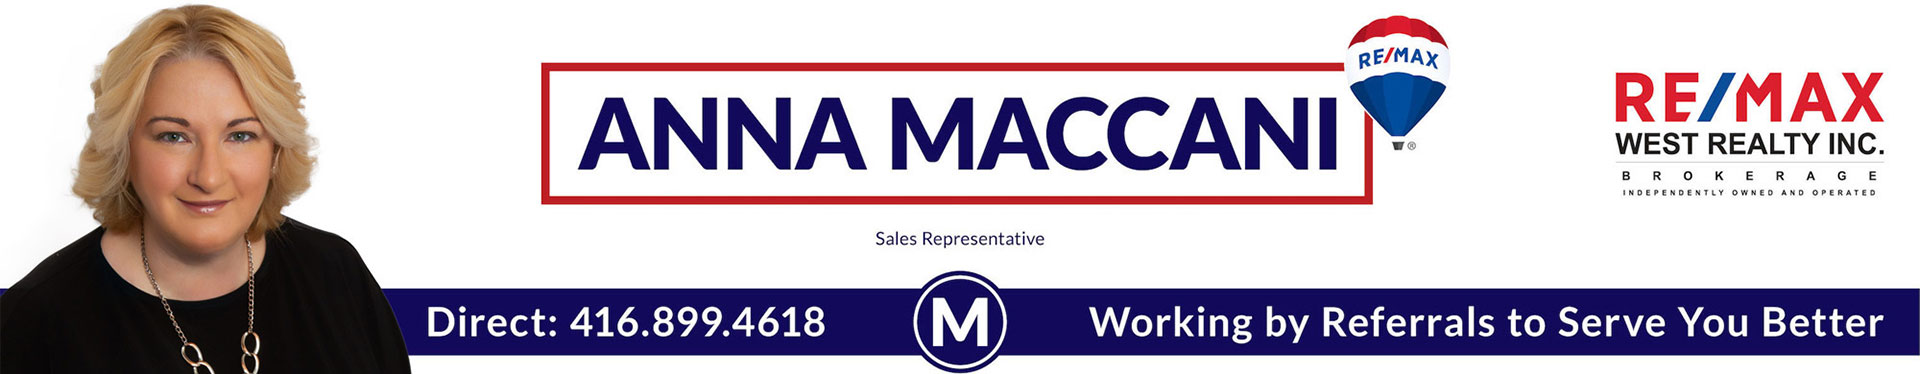 Homes For Sale | Anna Maccani Remax West Real Estate